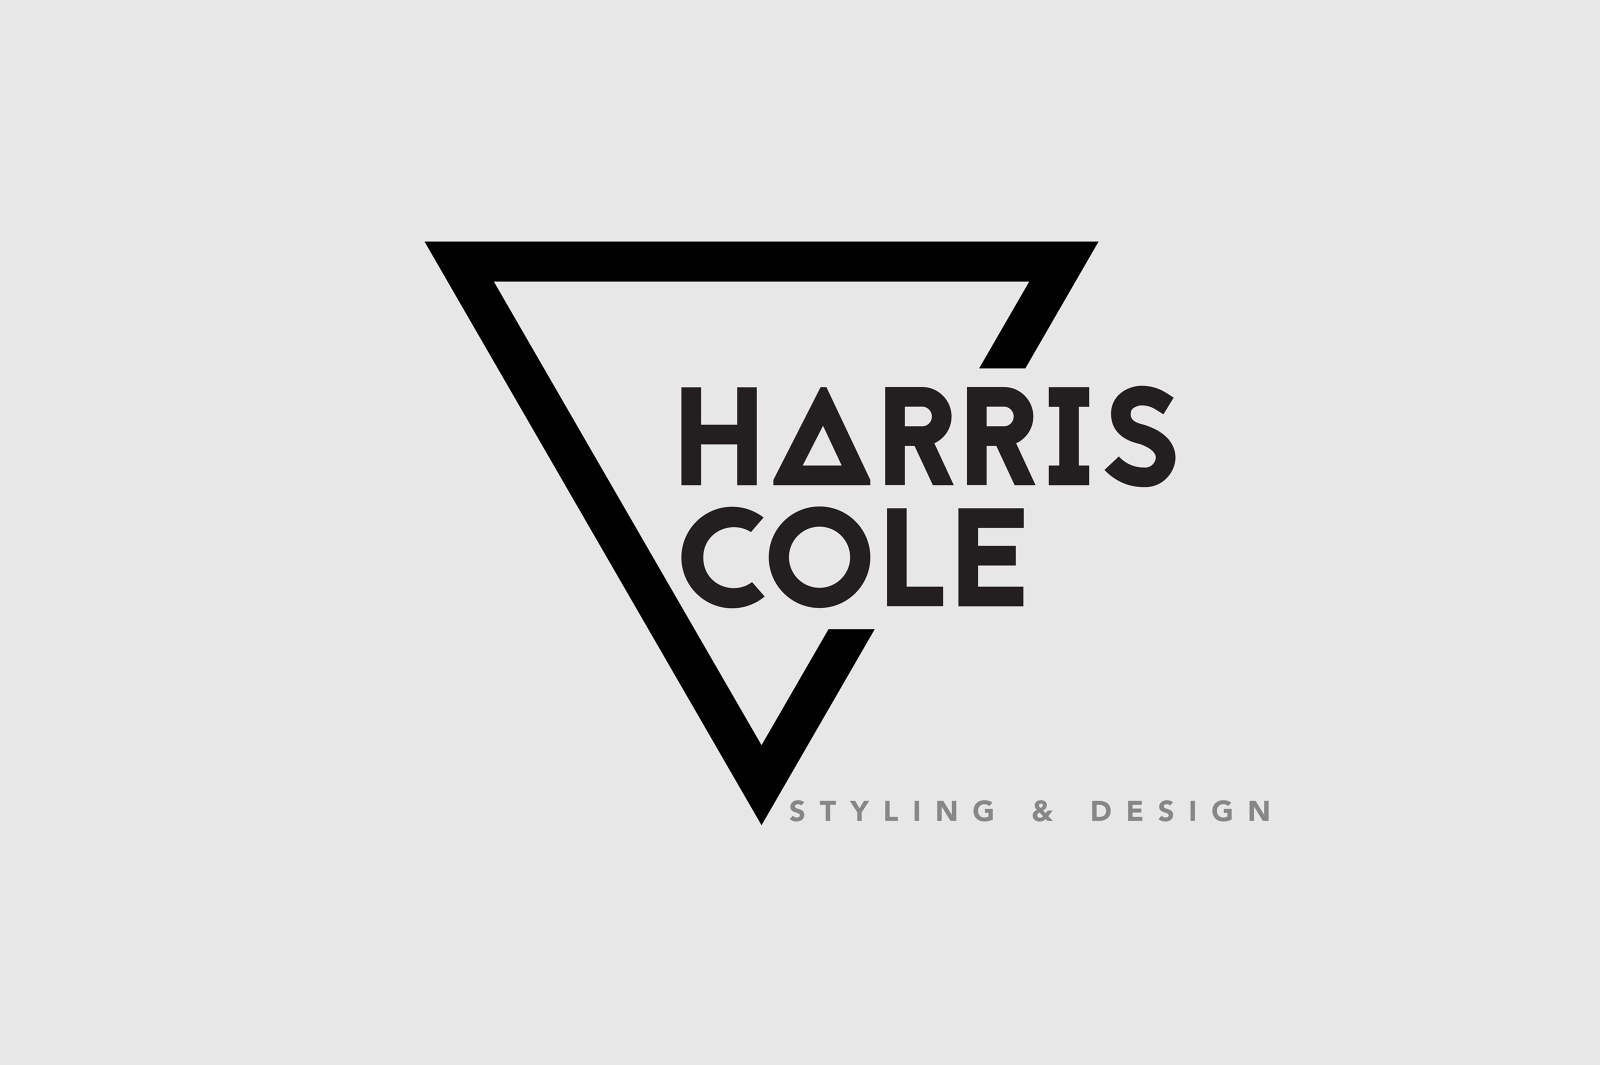 Harris Cole logo